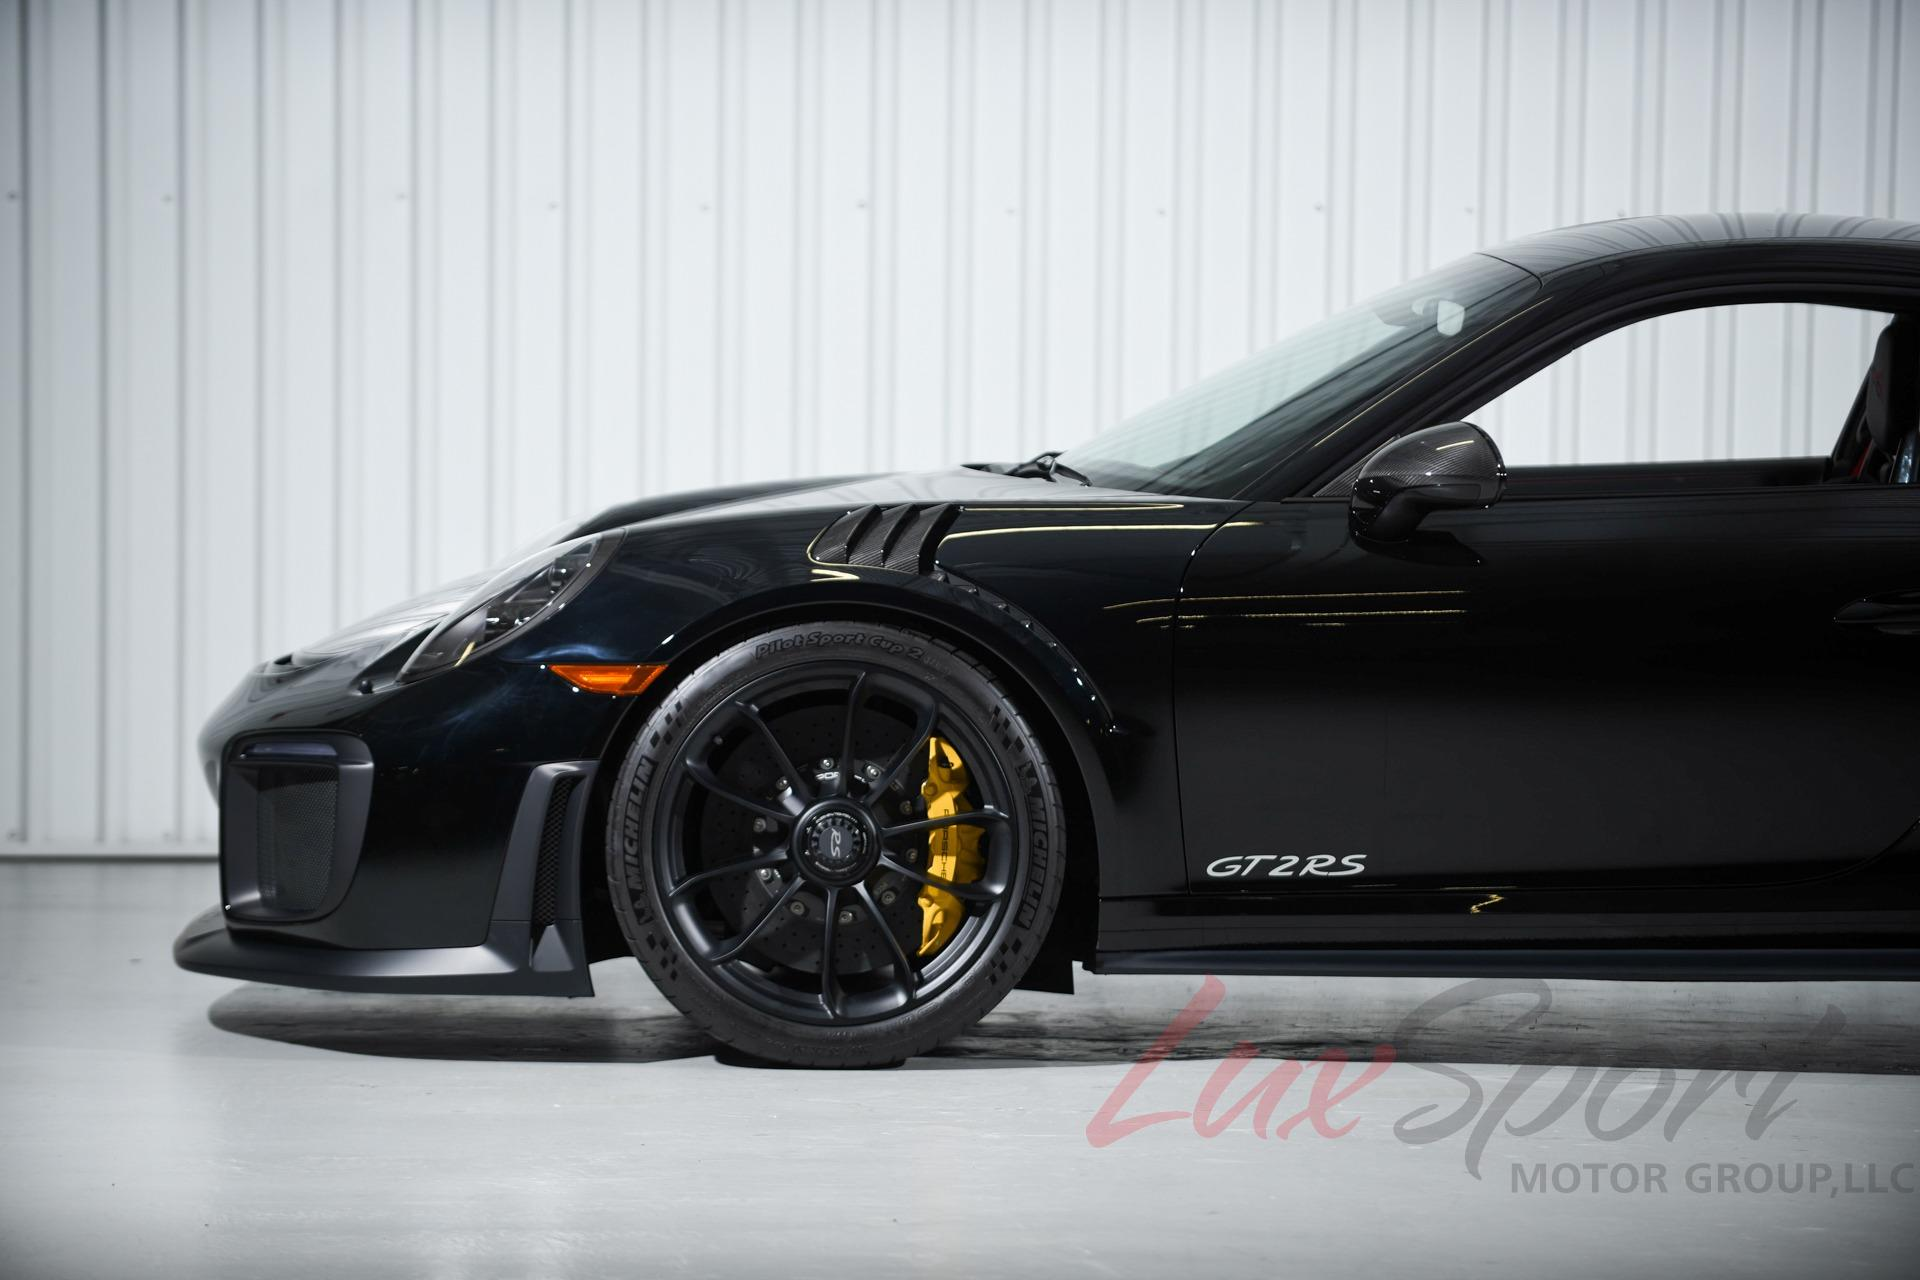 Used 2018 Porsche GT2 RS GT2 RS | New Hyde Park, NY